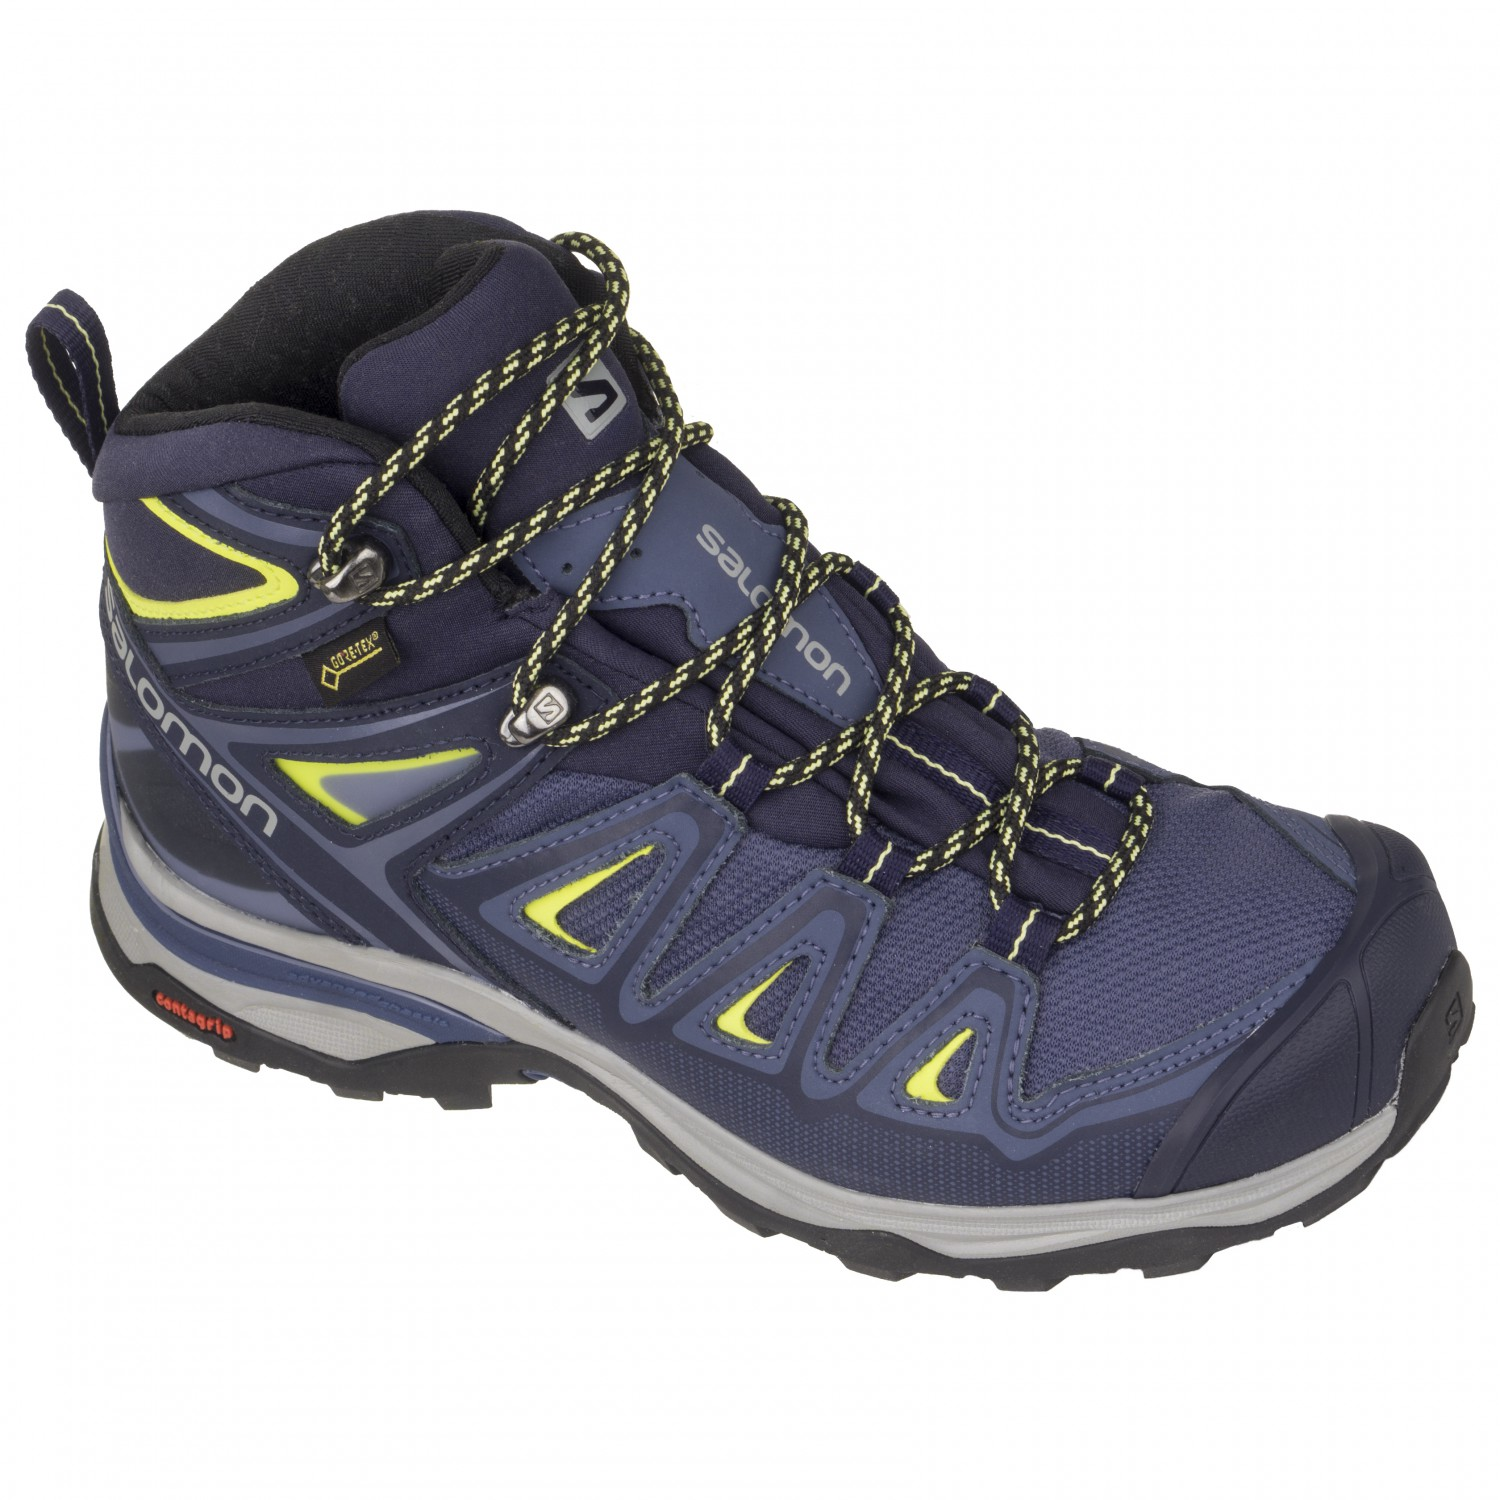 separation shoes 76958 eb219 Salomon - Women's X Ultra 3 Mid GTX - Scarpe da trekking - Magnet / Black /  Monument | 4 (UK)